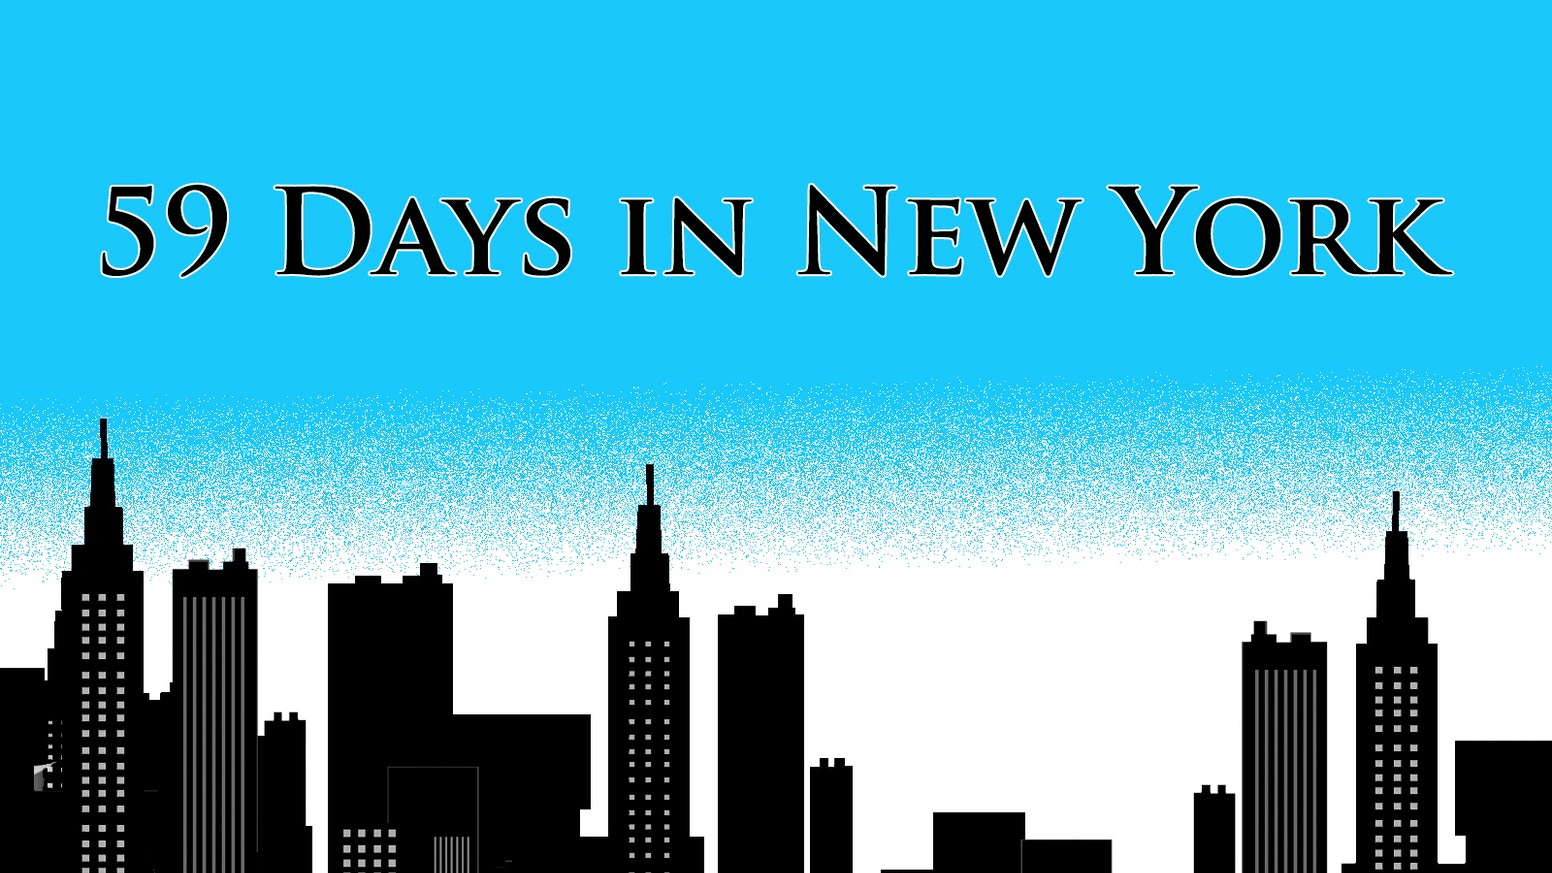 59 Days in New York is a musical about tight budgets and big dreams.